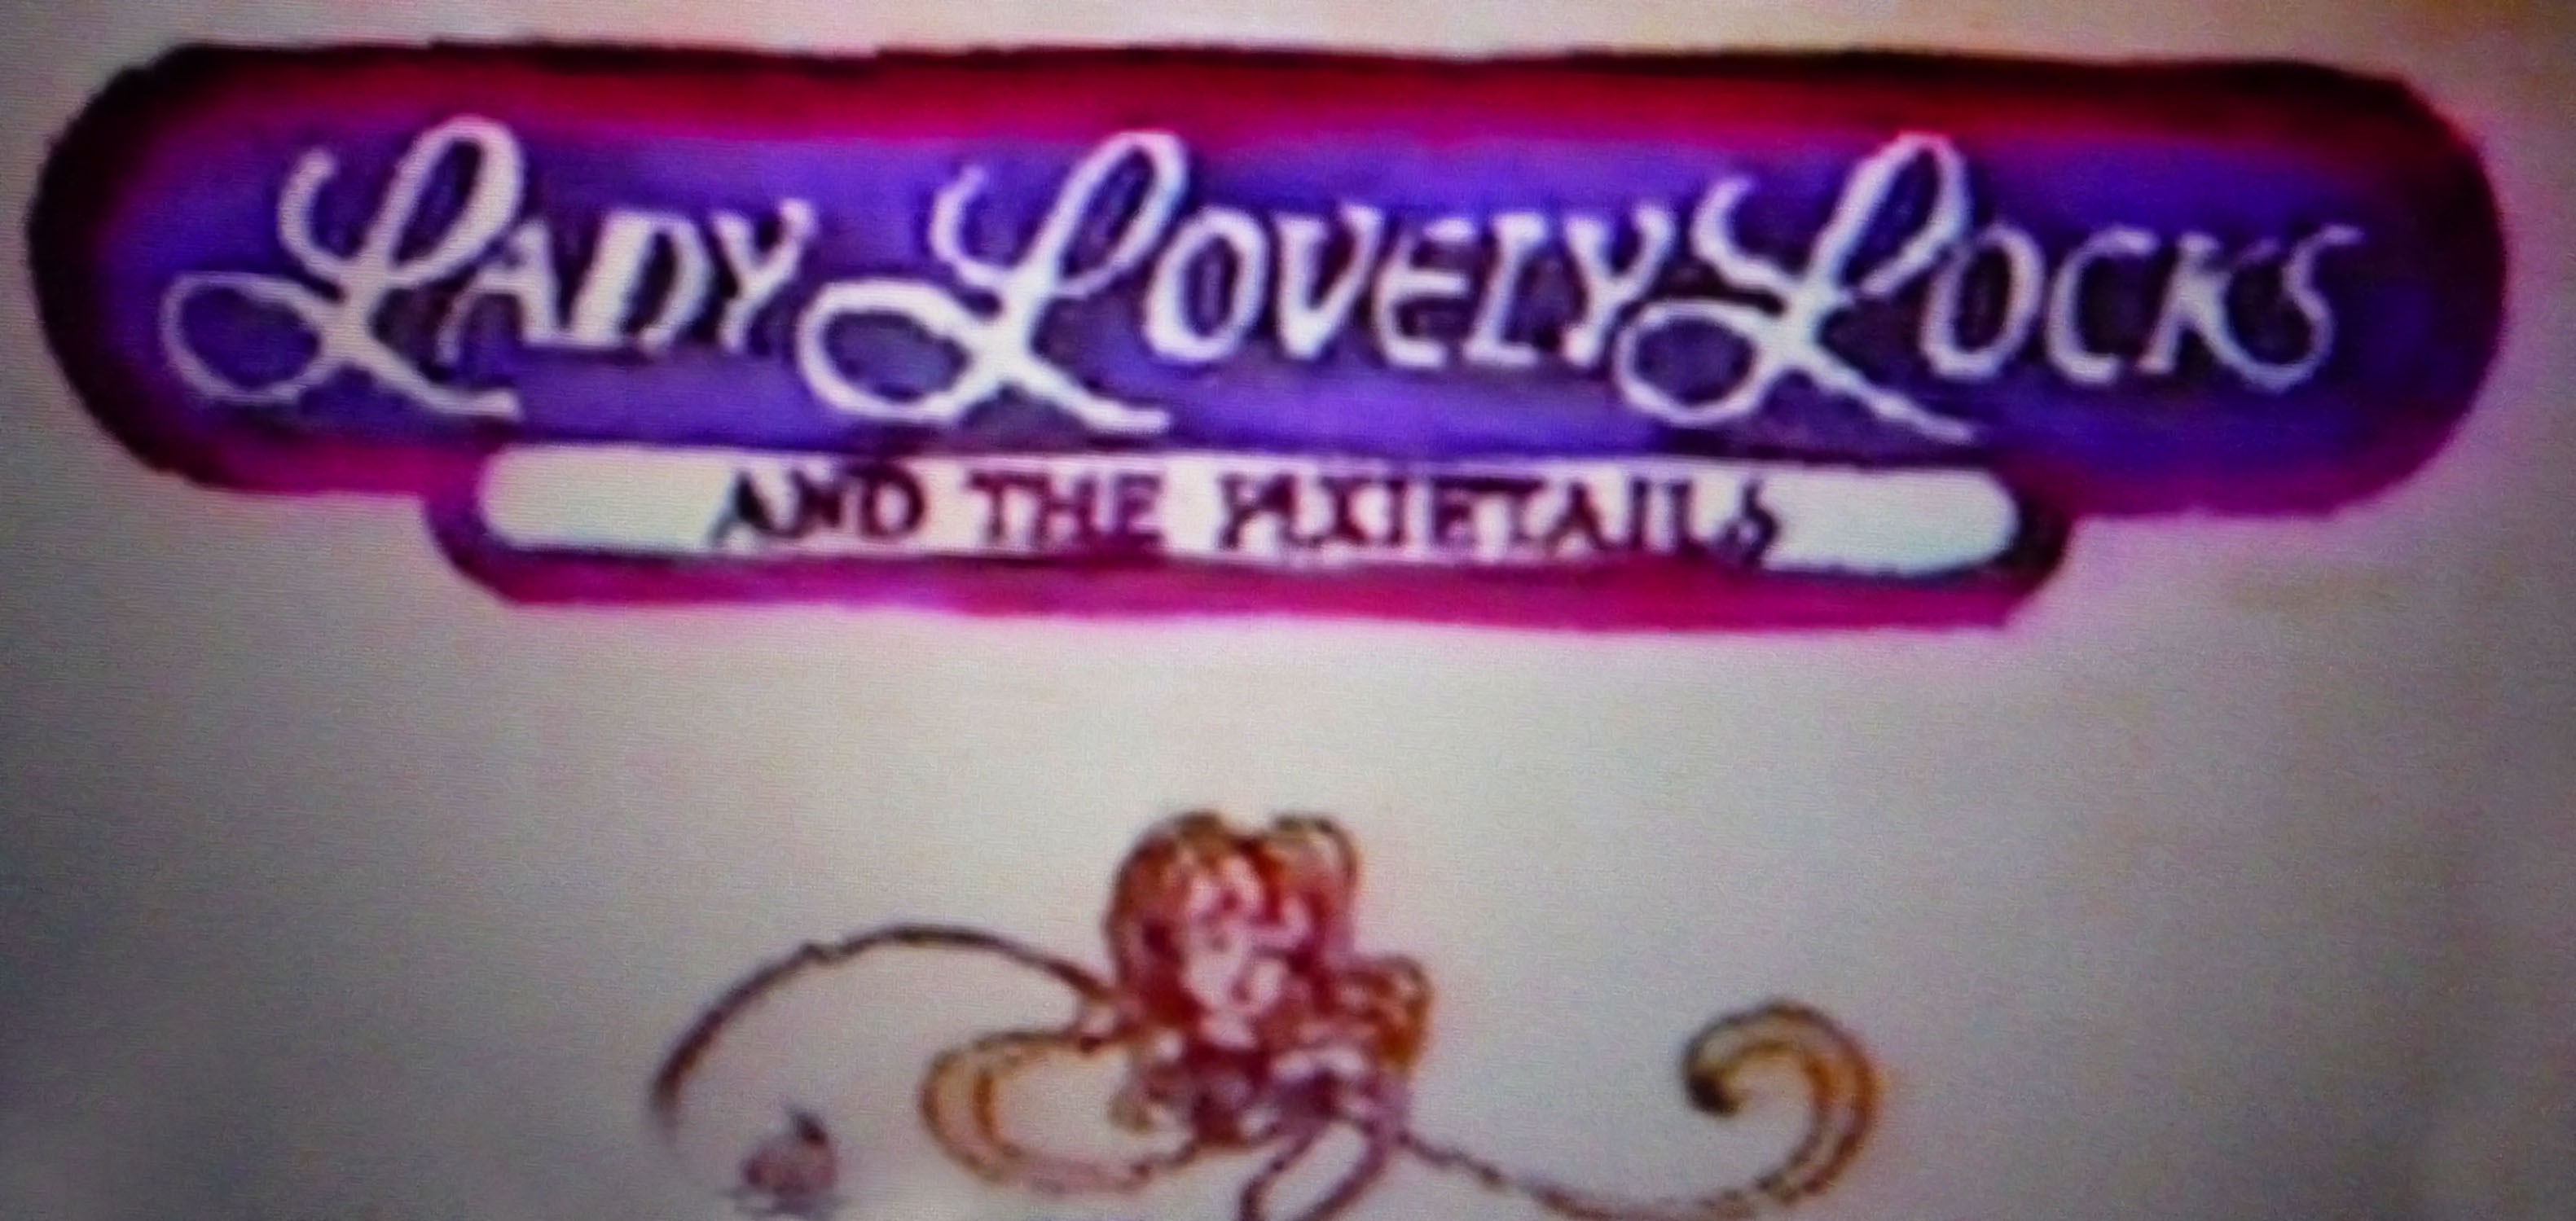 Lady Lovely Locks and the Pixietails